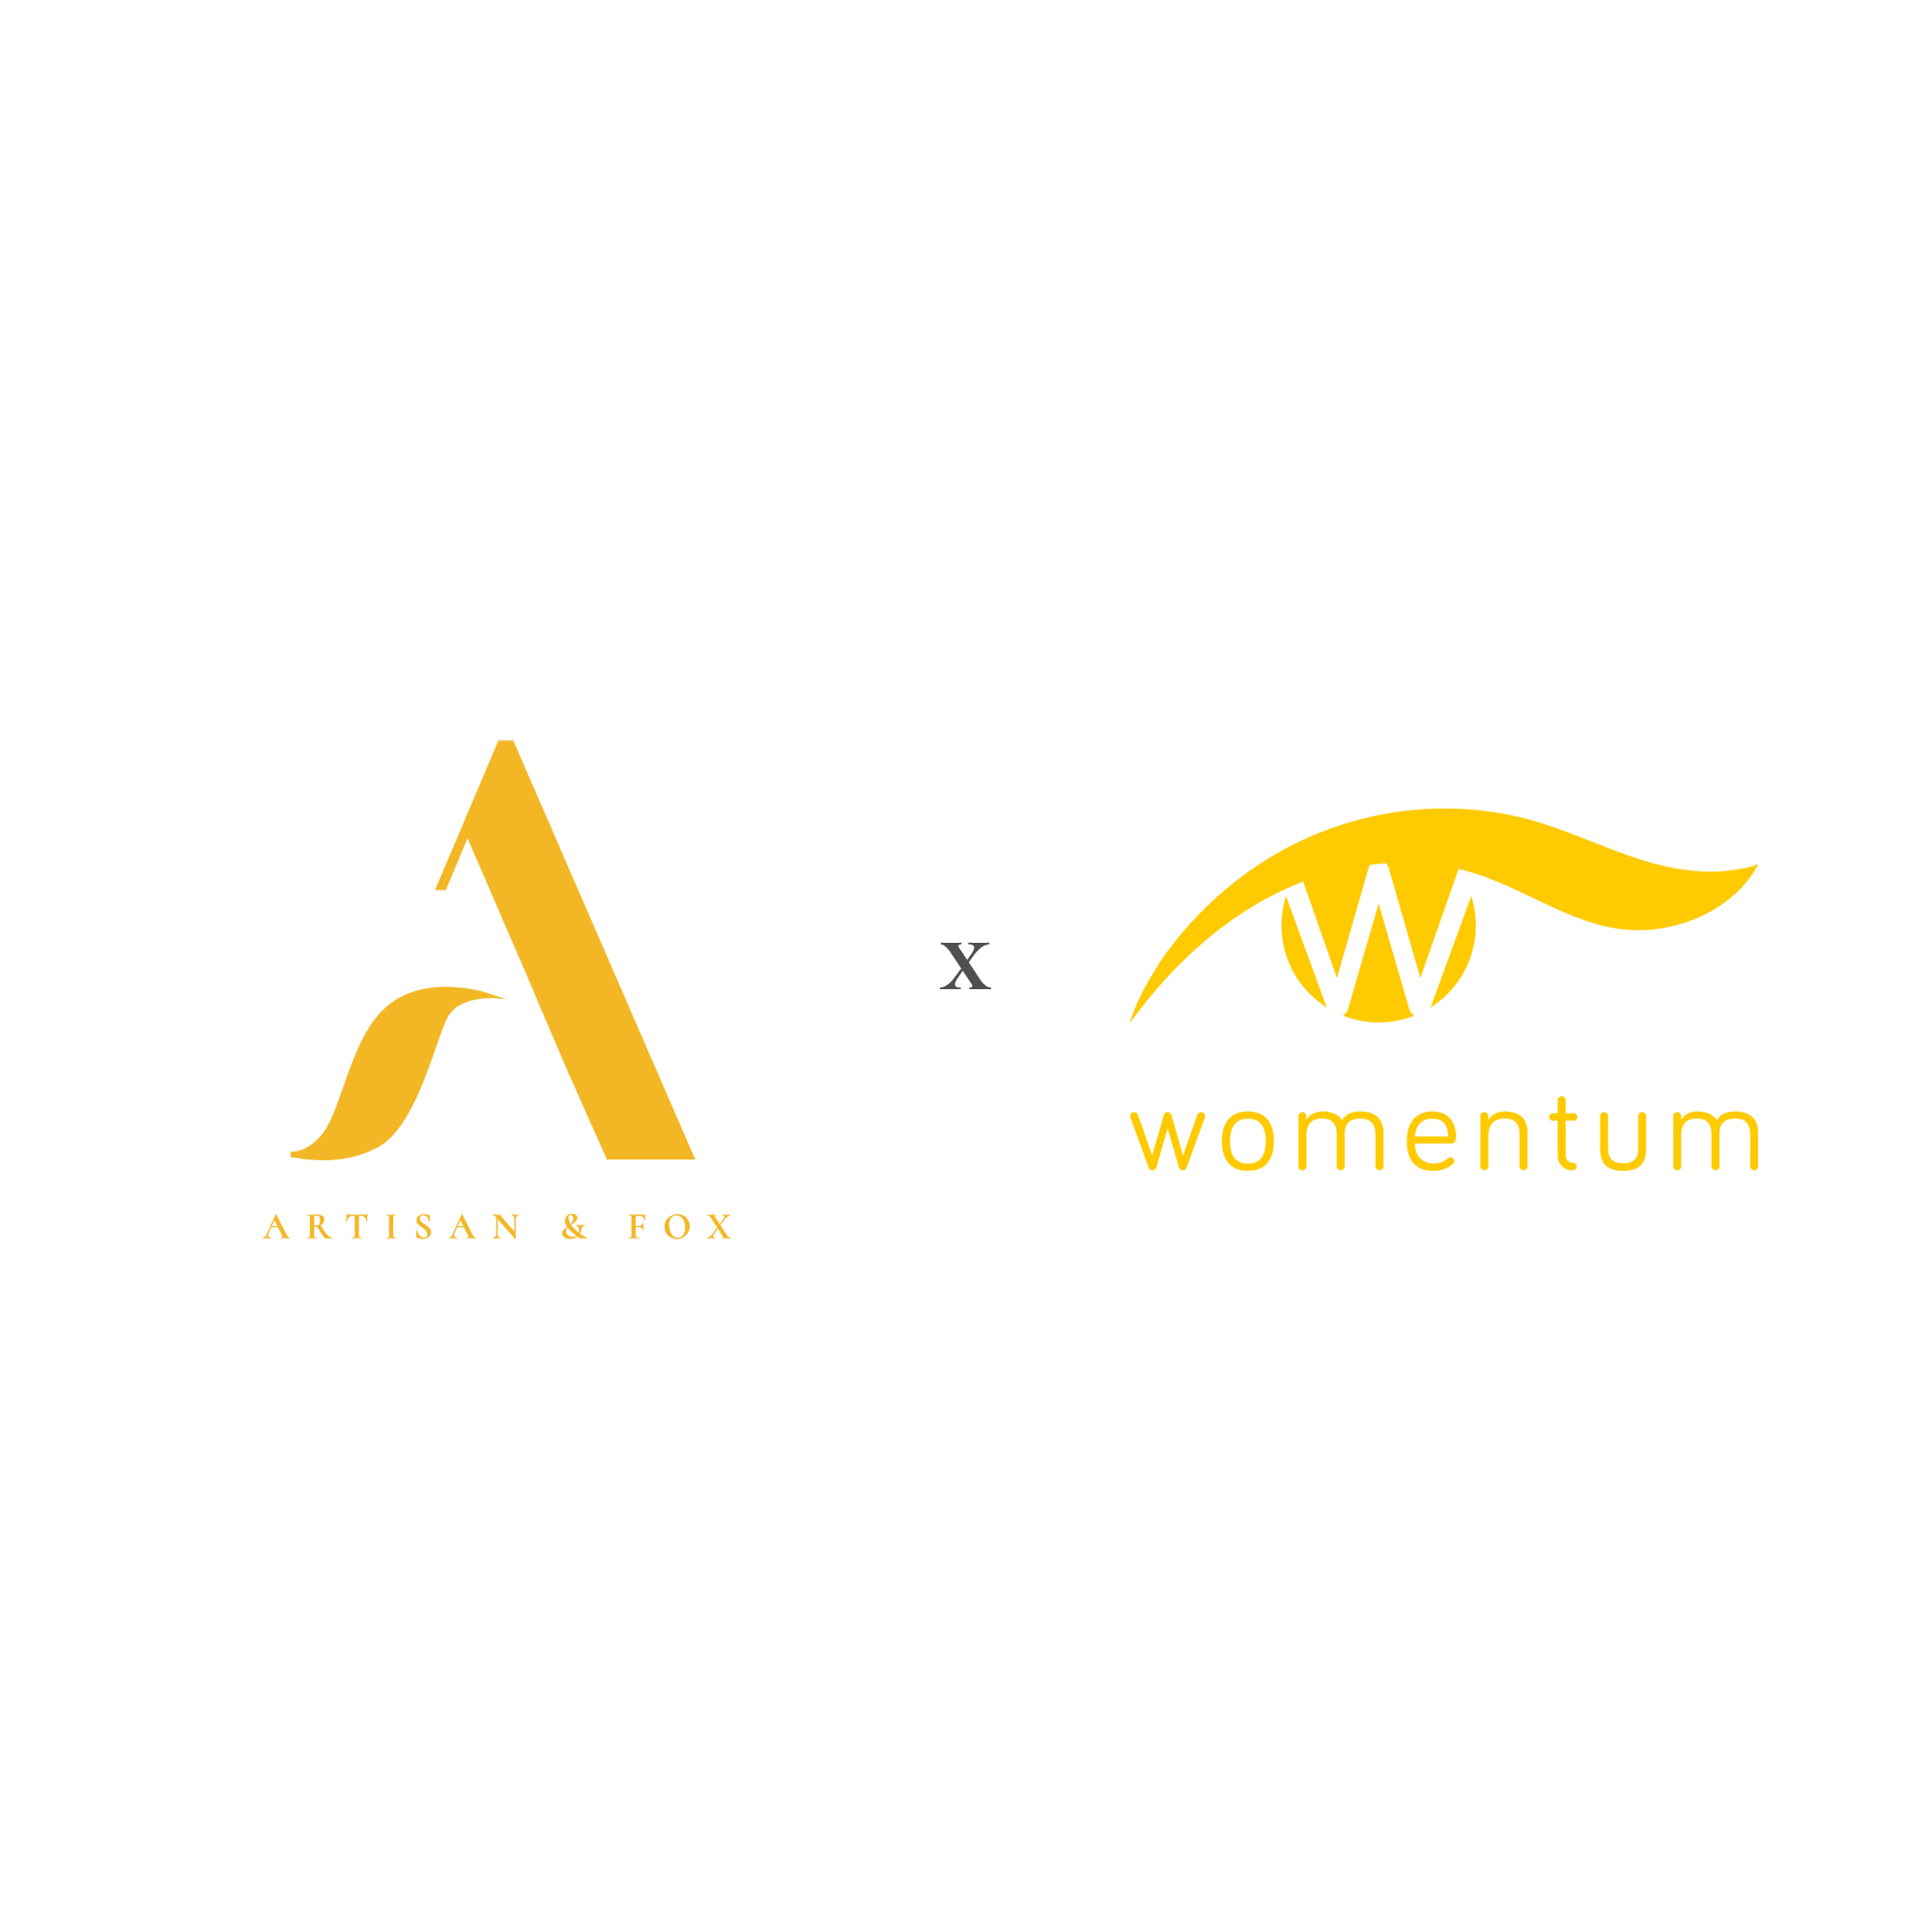 auditing partner - Launched on International Women's Day on 8th March 2018, the Thrive Transfers Fund is issued in partnership with the US non-profit Womentum.io.The Thrive Transfers recipients are women artisan partners selected by Artisan & Fox, vetted with the support of Womentum and a local artisan organization. Each Thrive Transfer is funded by our social business' profits. Apart from providing 50% of gross profits to our makers, We have set aside an additional 10% for the Thrive Transfers Fund for profits from selected crafts.  You can choose to directly support the artisans' funding requests too, if you wish to.